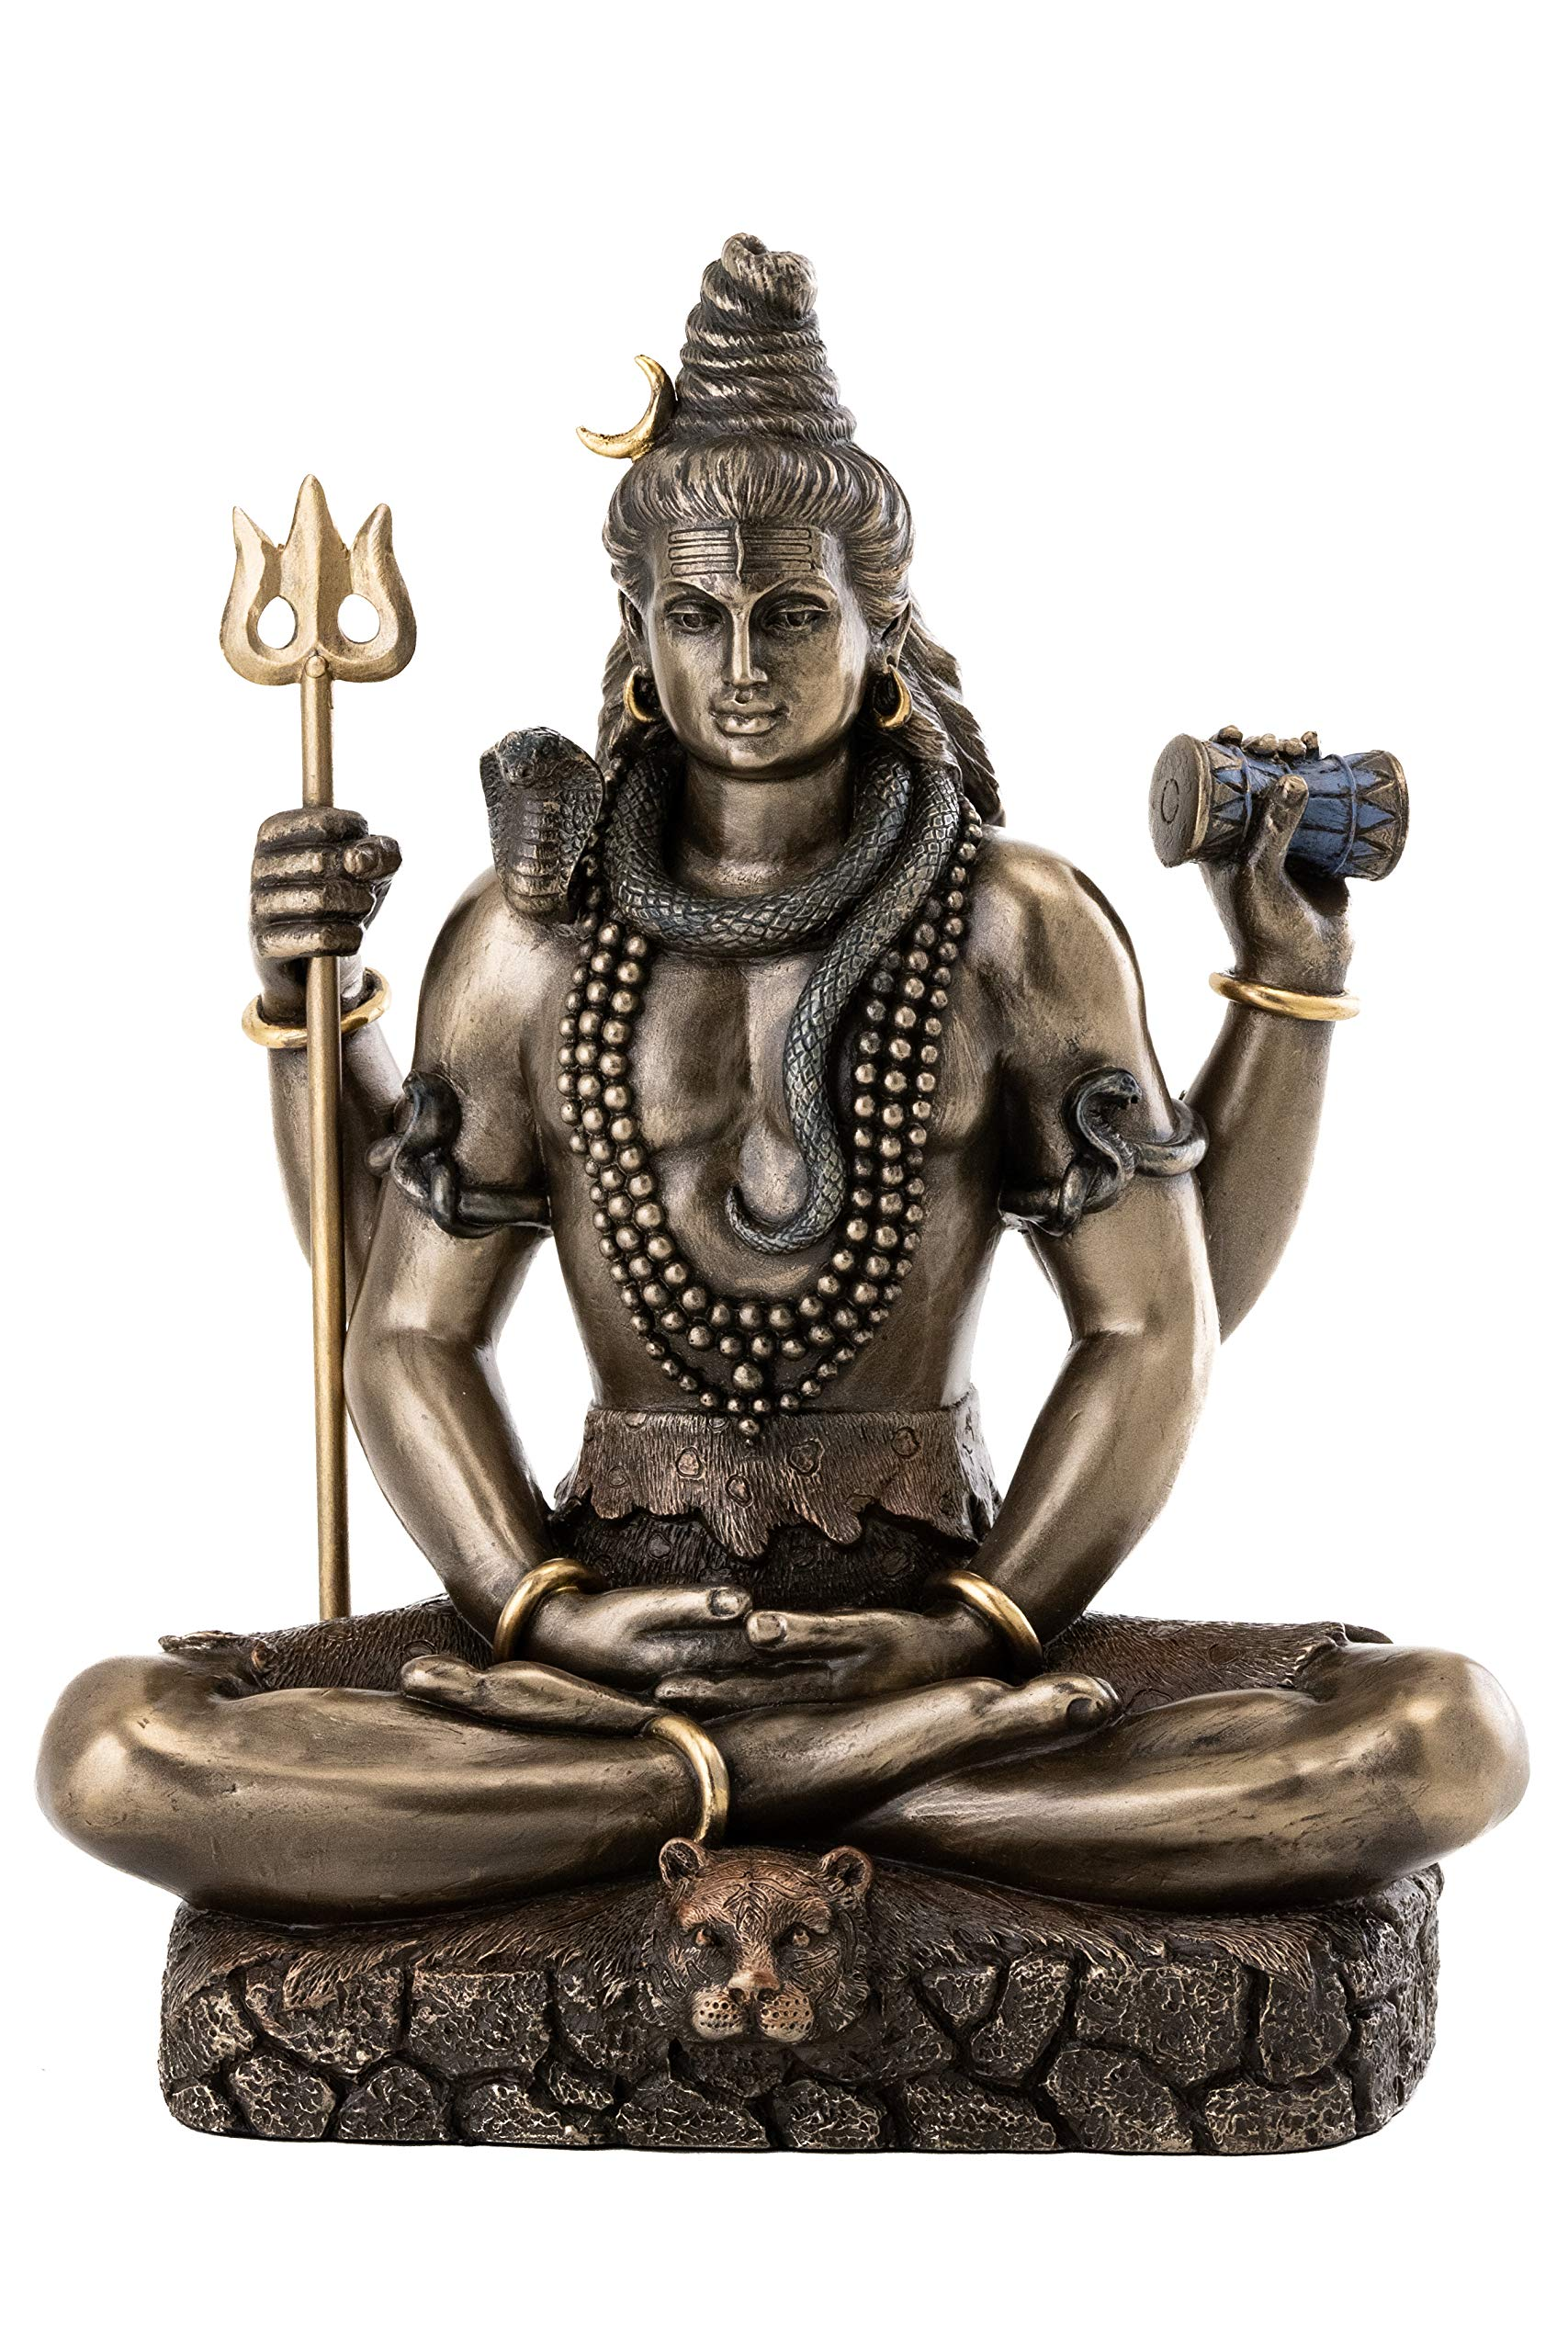 Top Collection Shiva Statue in Padmasana Lotus Pose-Hindu God of Destroying Evil, Ignorance, and Death Sculpture - Collectible Figurine (Cold Cast Bronze) by Top Collection